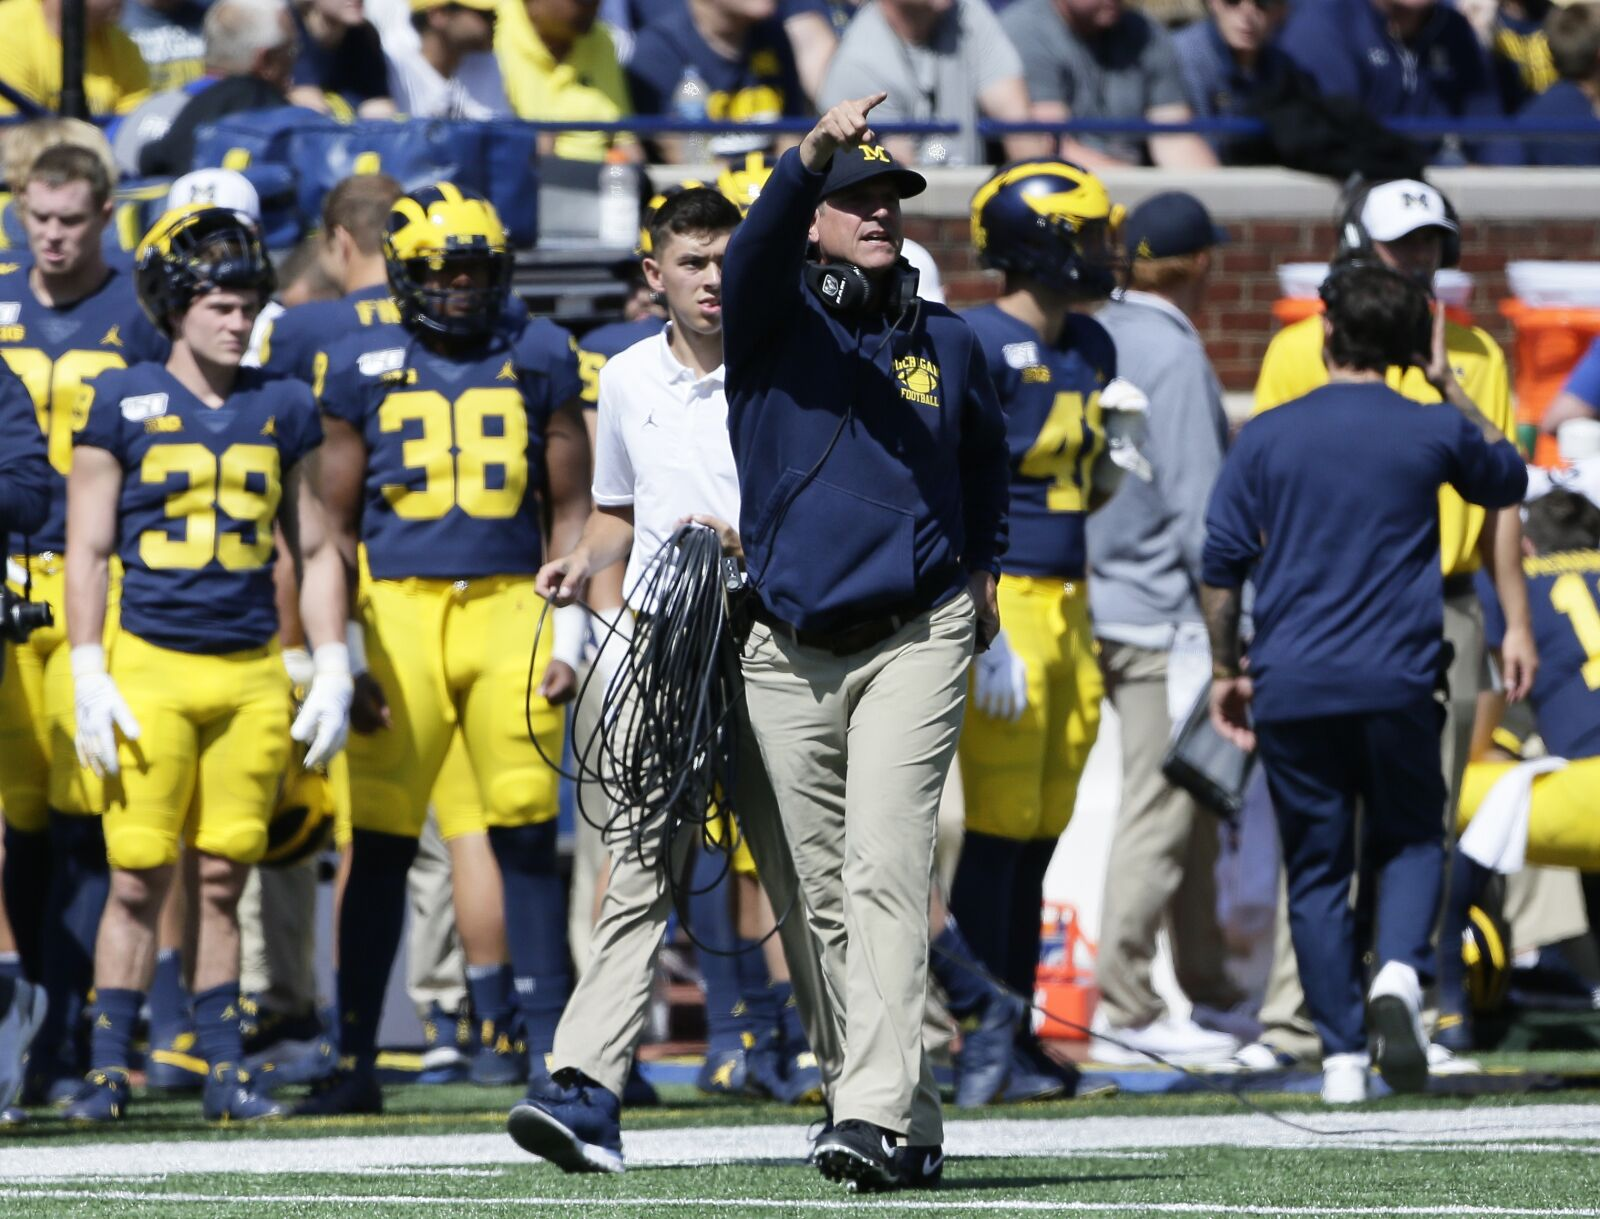 College football Week 4: Top 25 schedule and predictions – Will Michigan beat Wisconsin?